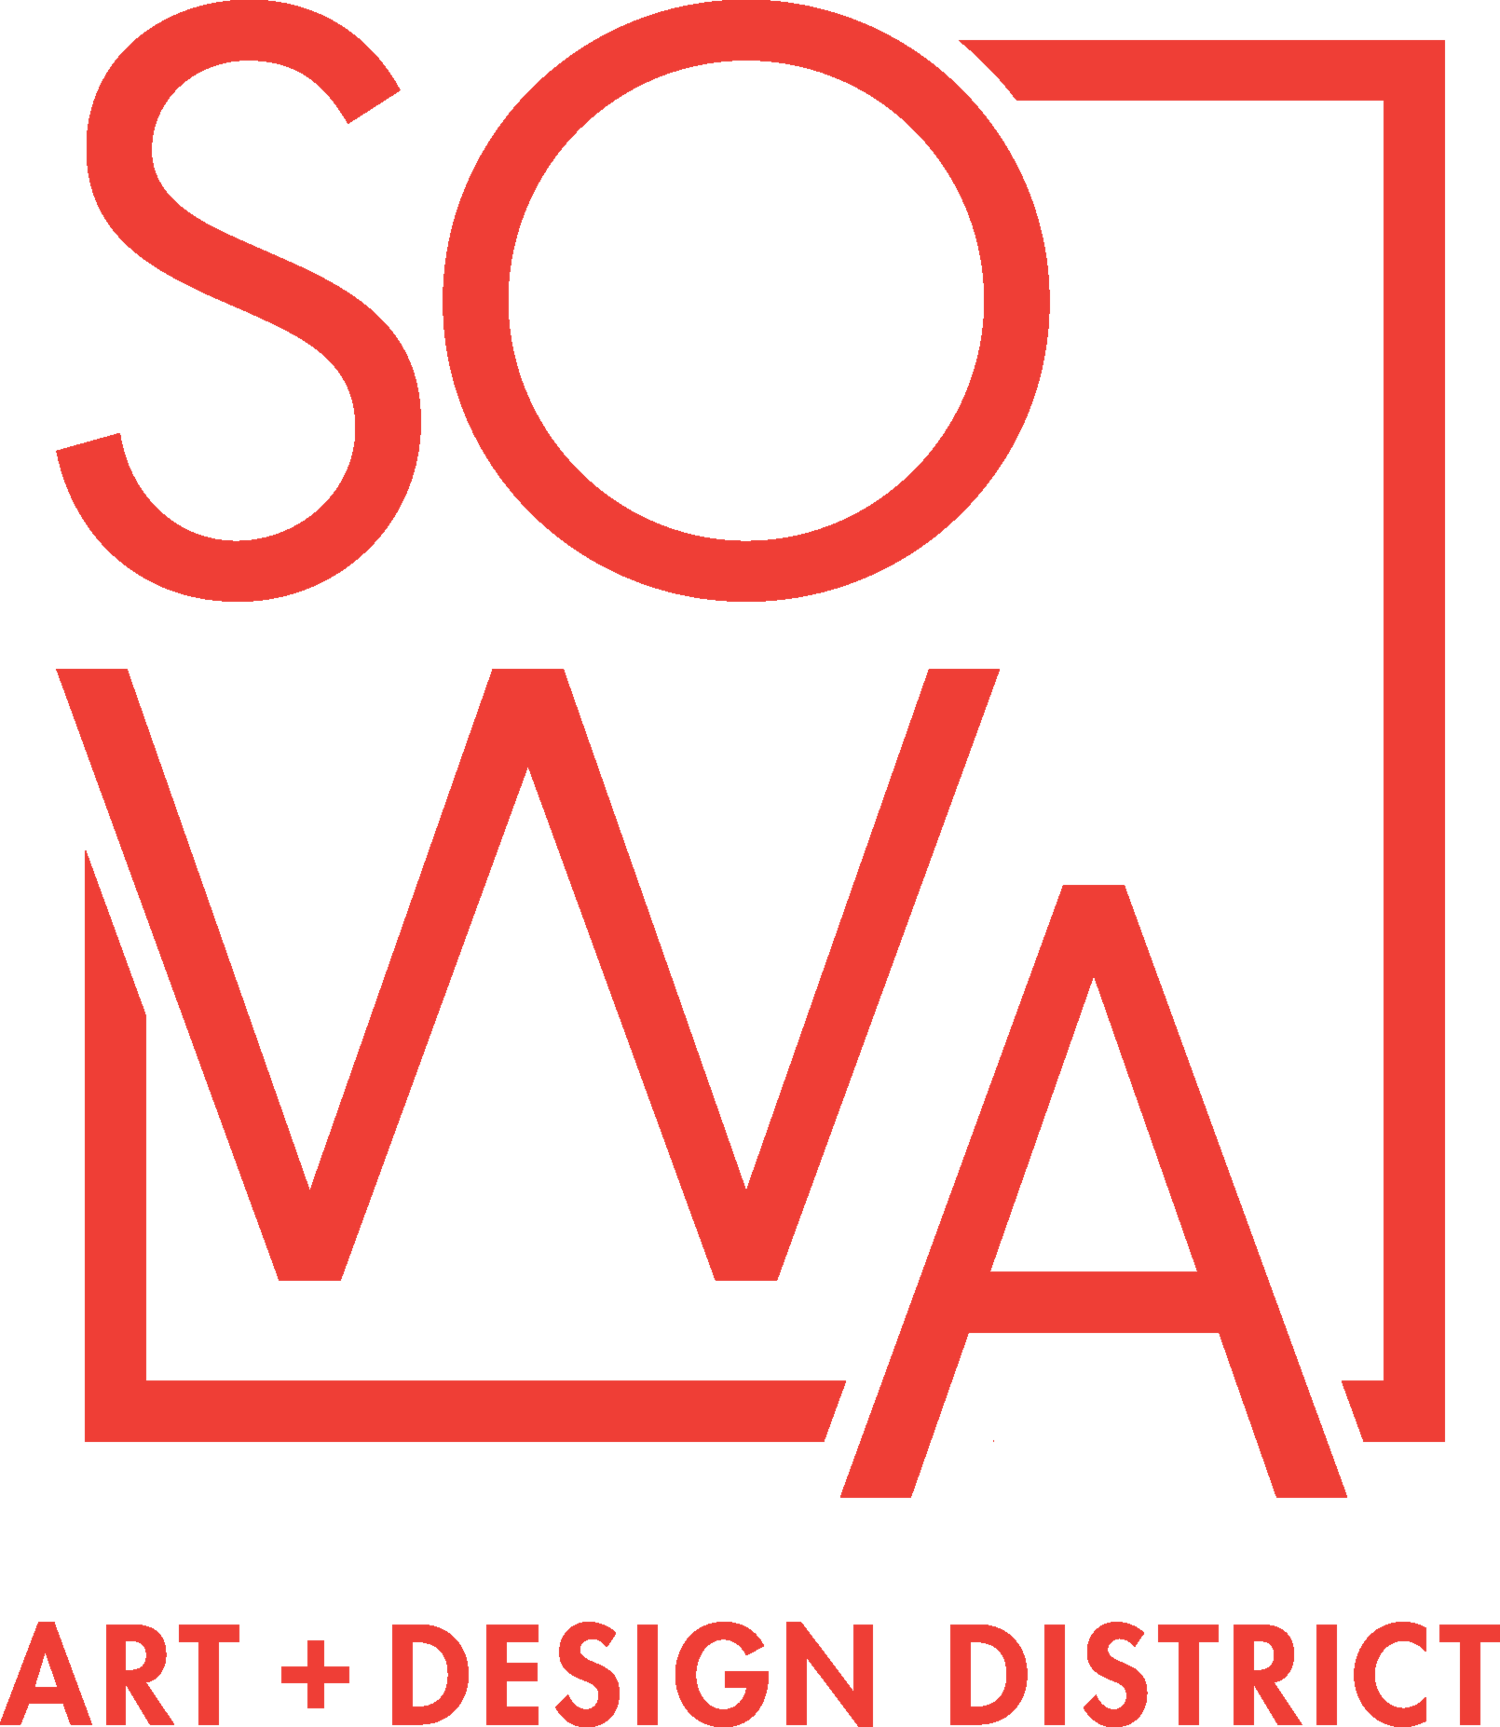 SOWA Arts district design logo; red, white